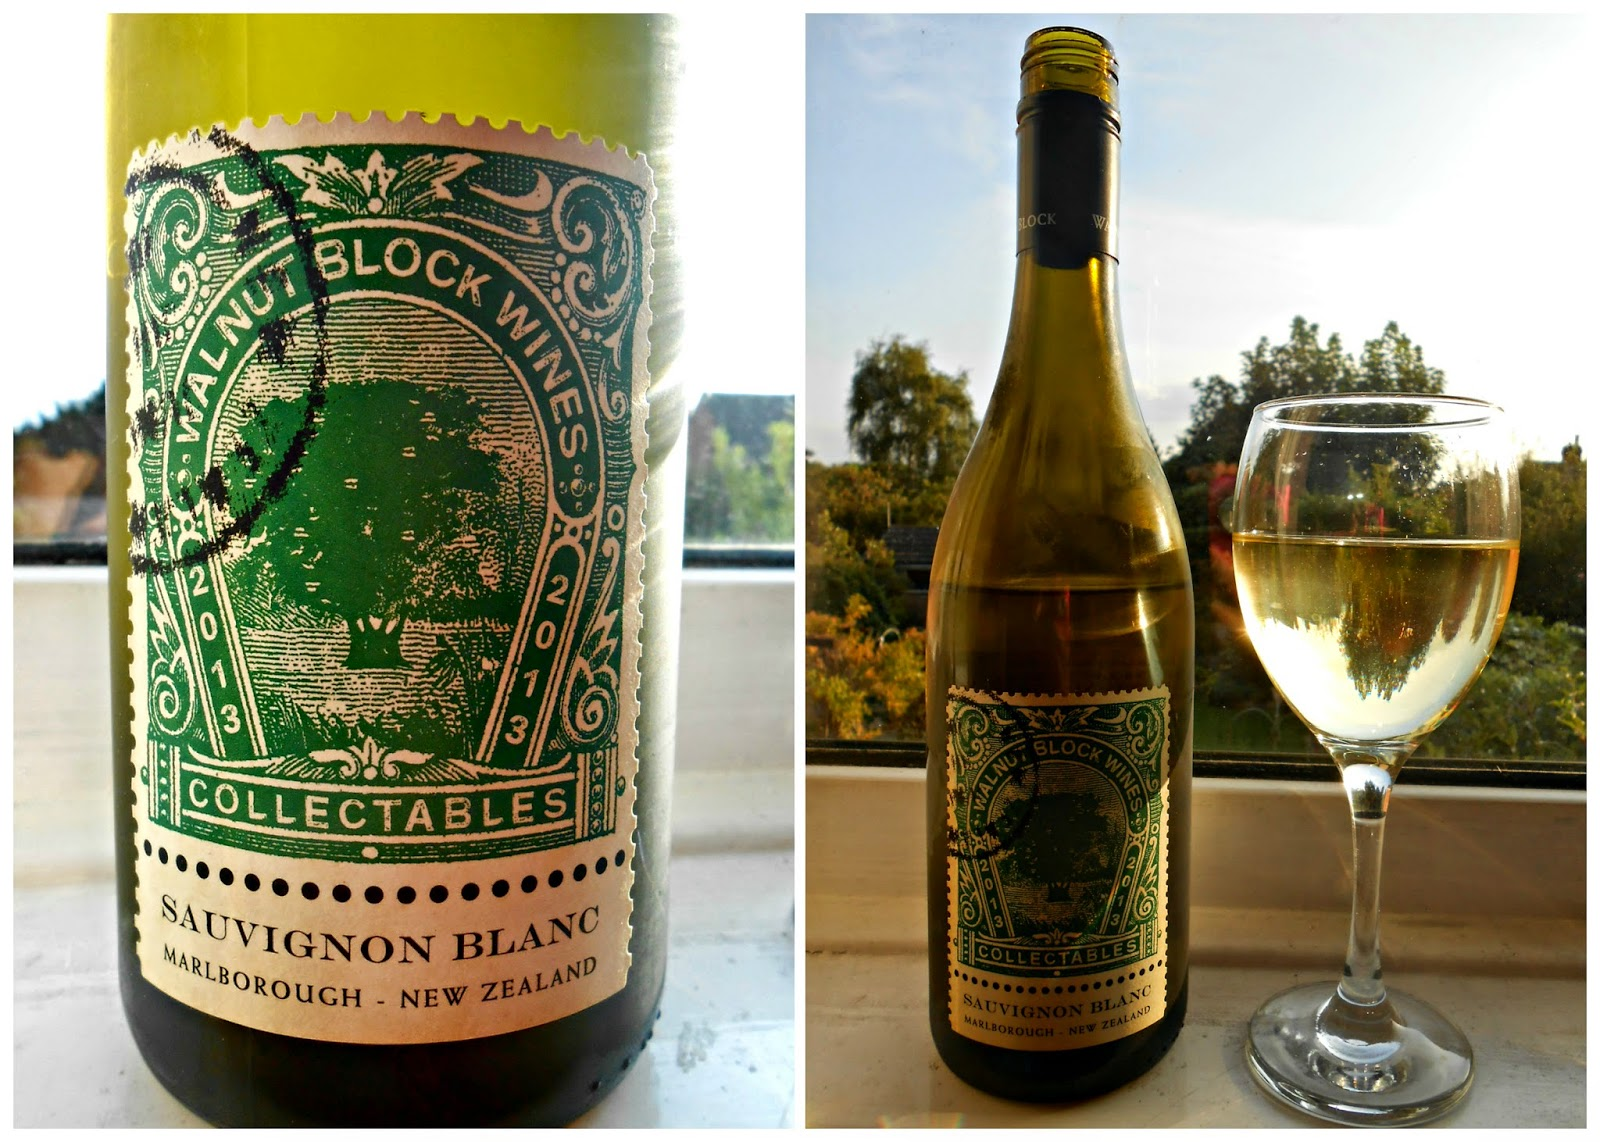 The Collectables Sauvignon Blanc